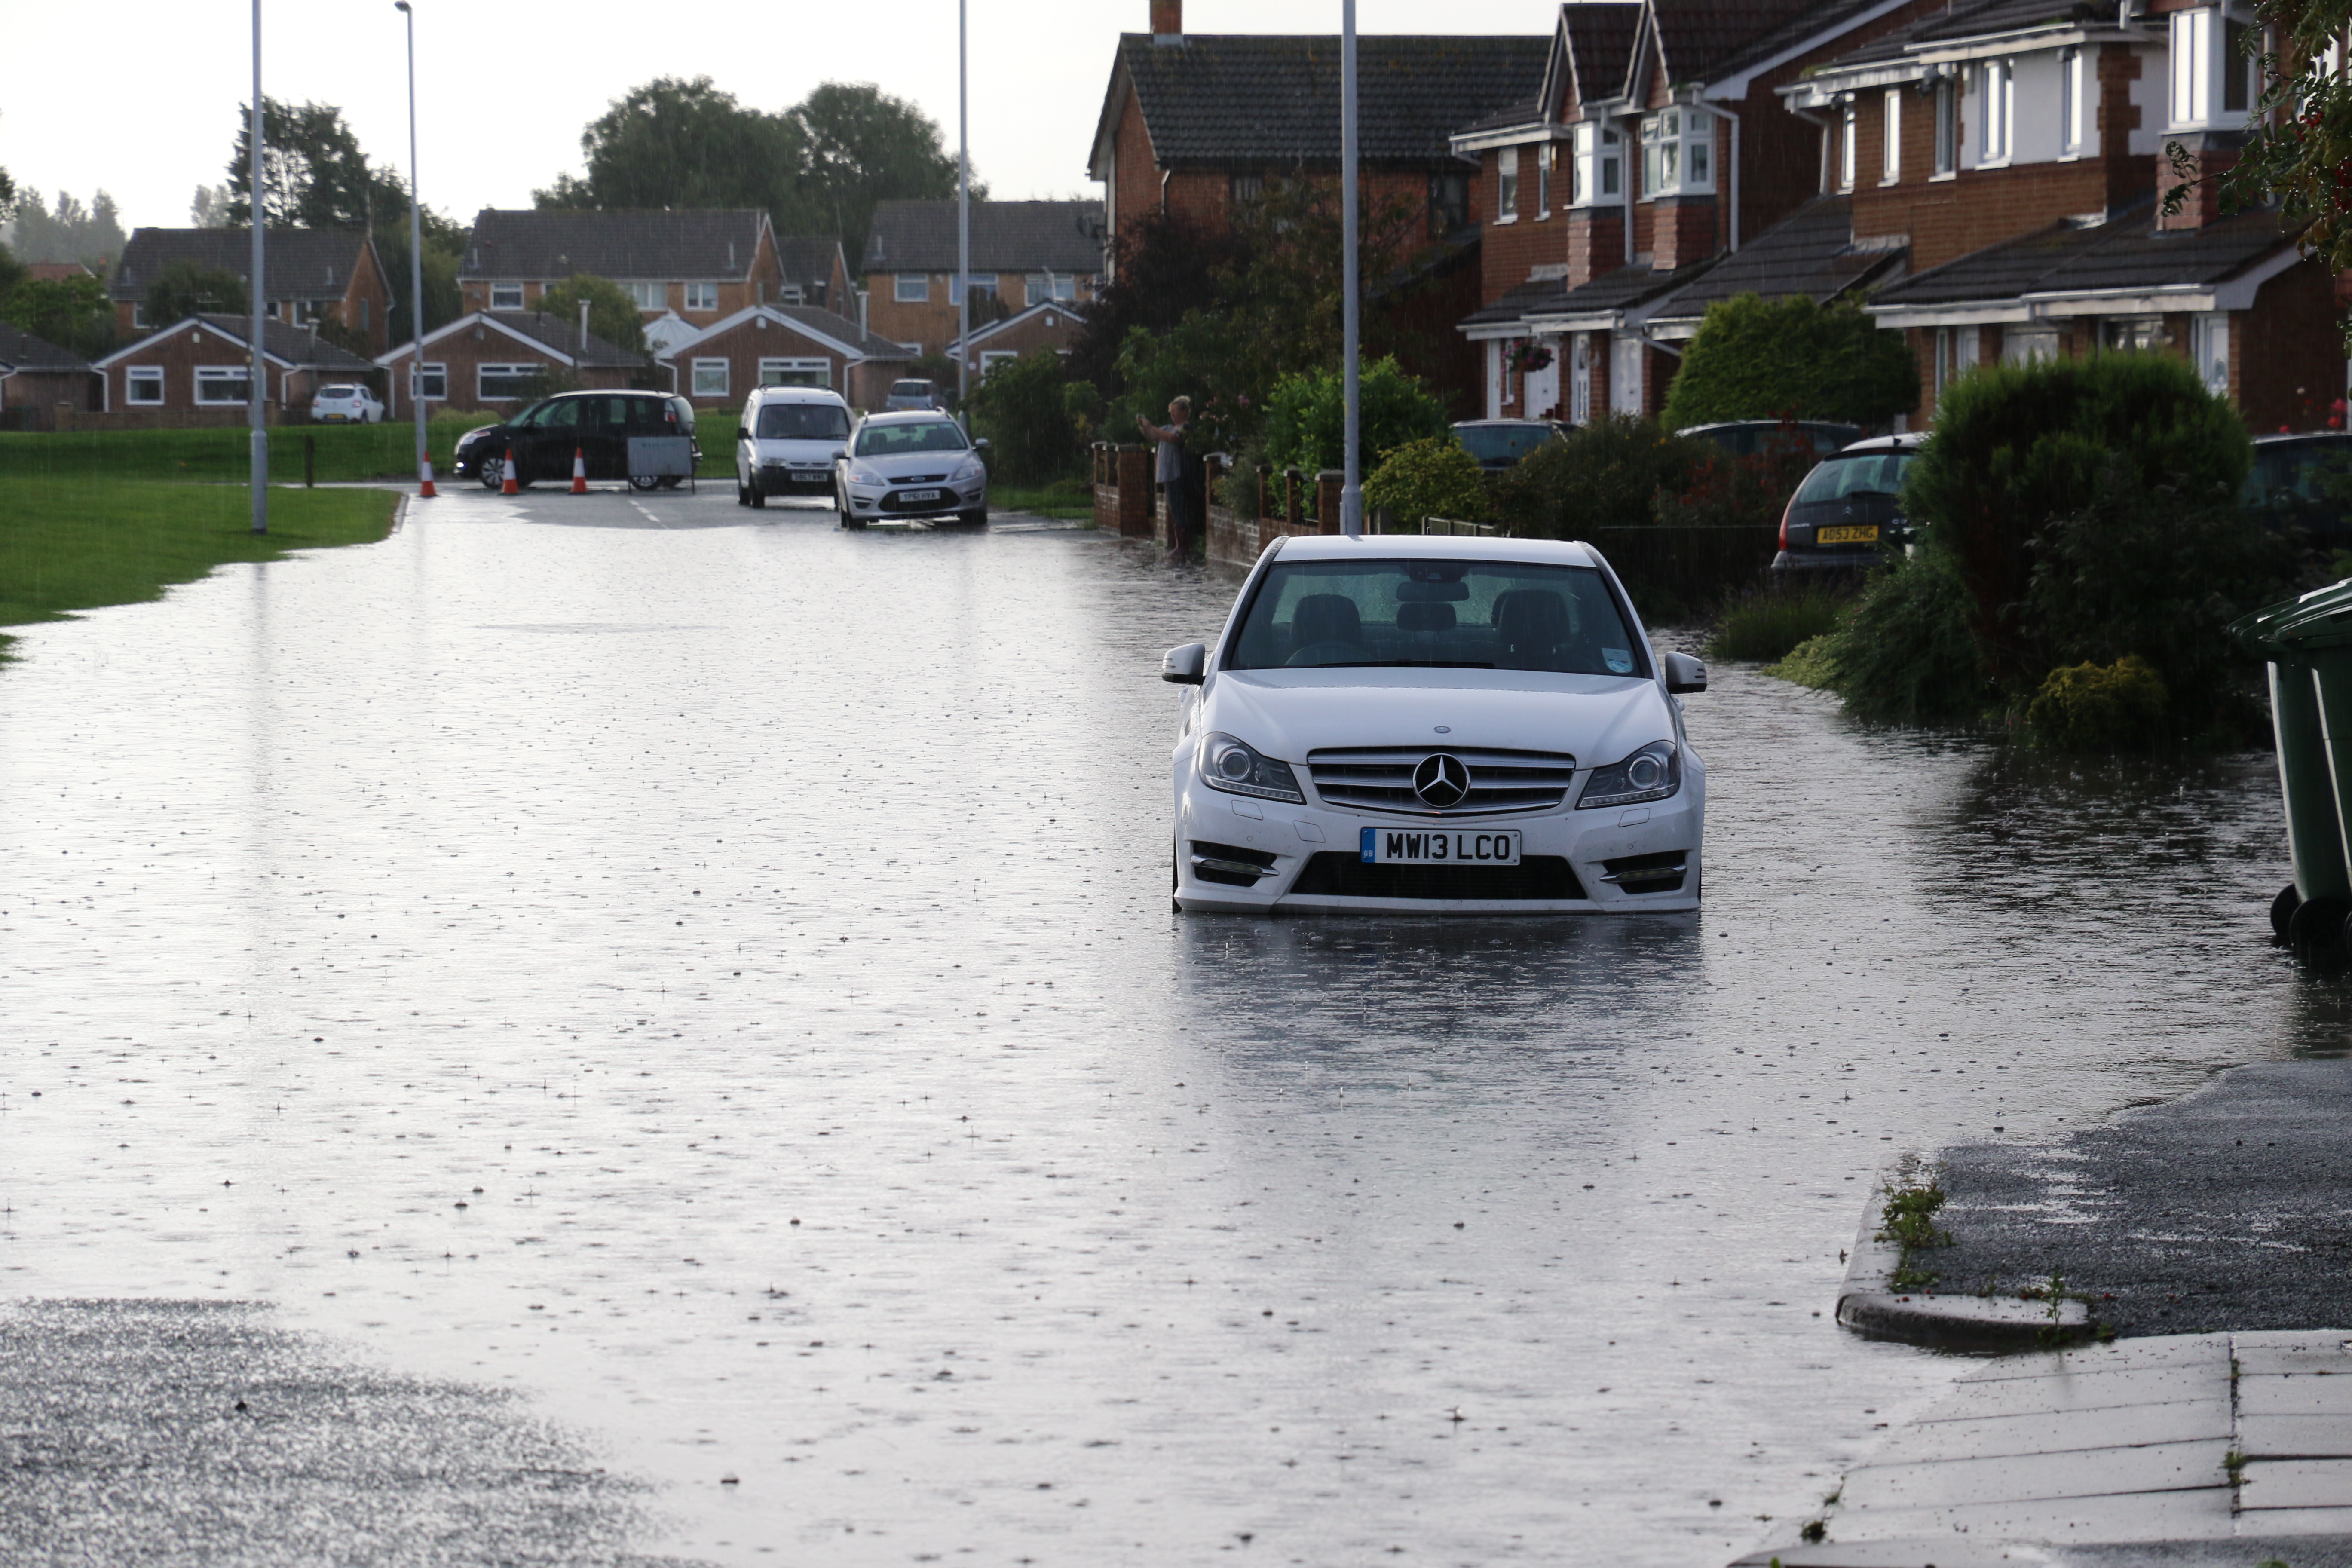 Moreton Floods - Millhouse Lane, Mercedes suffering from a water-logged engine.